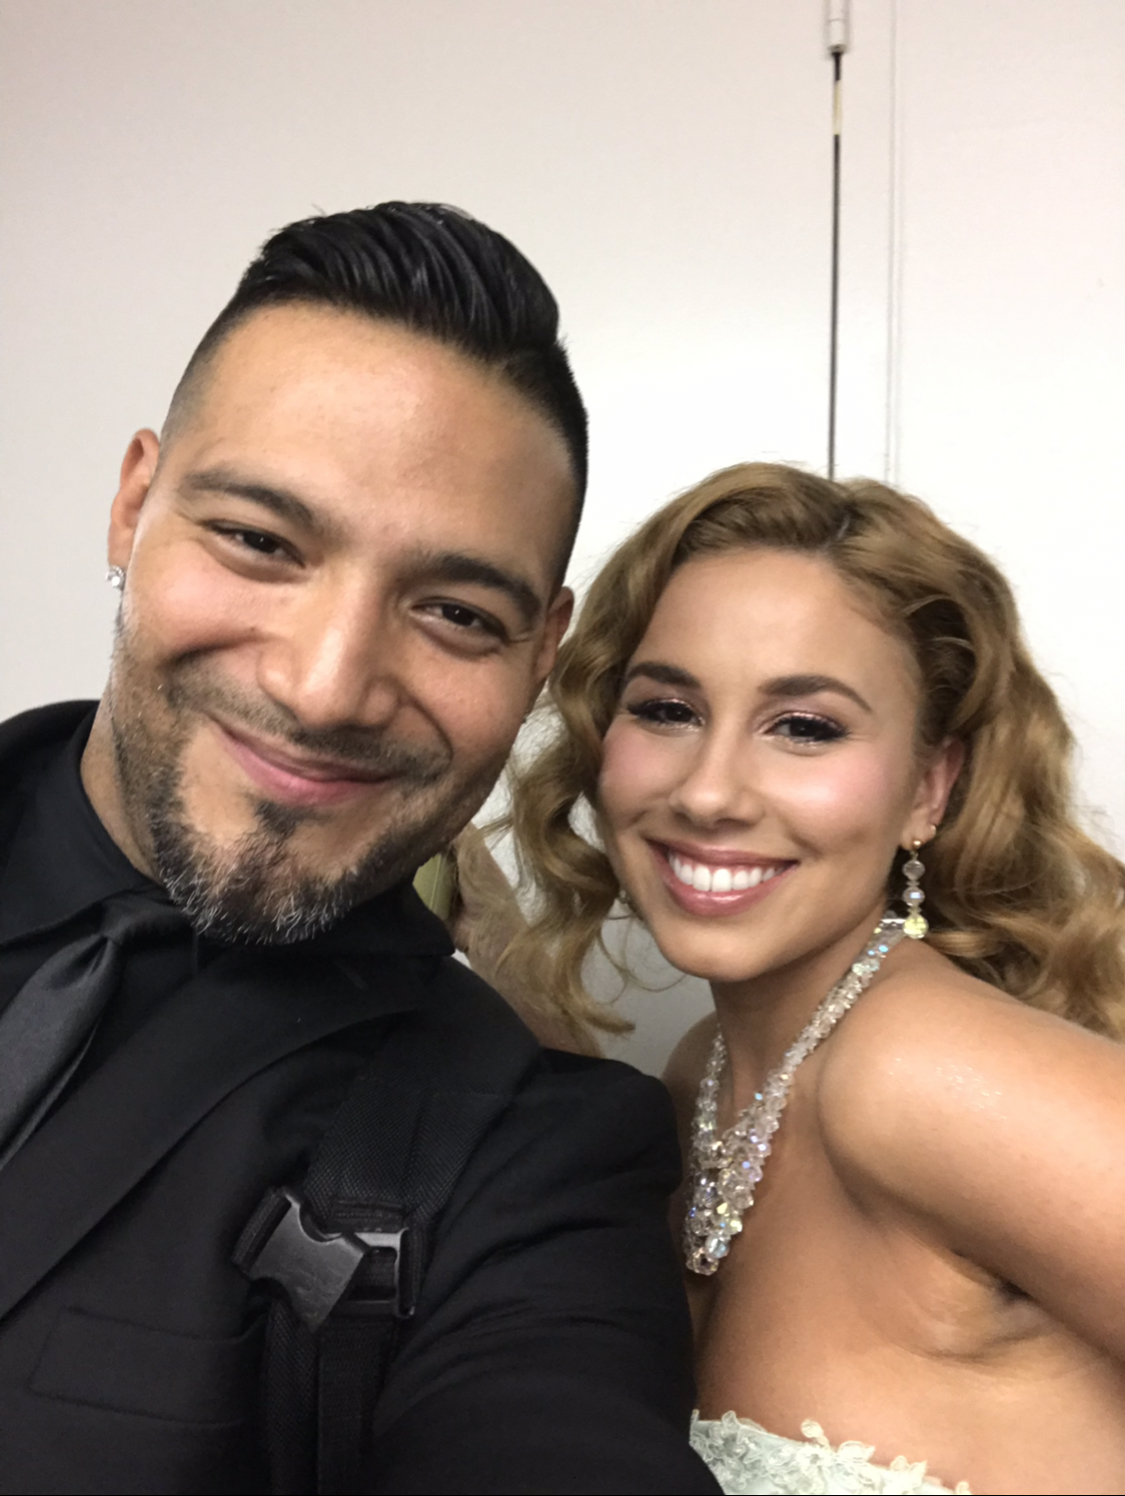 w/ Haley Reinhart